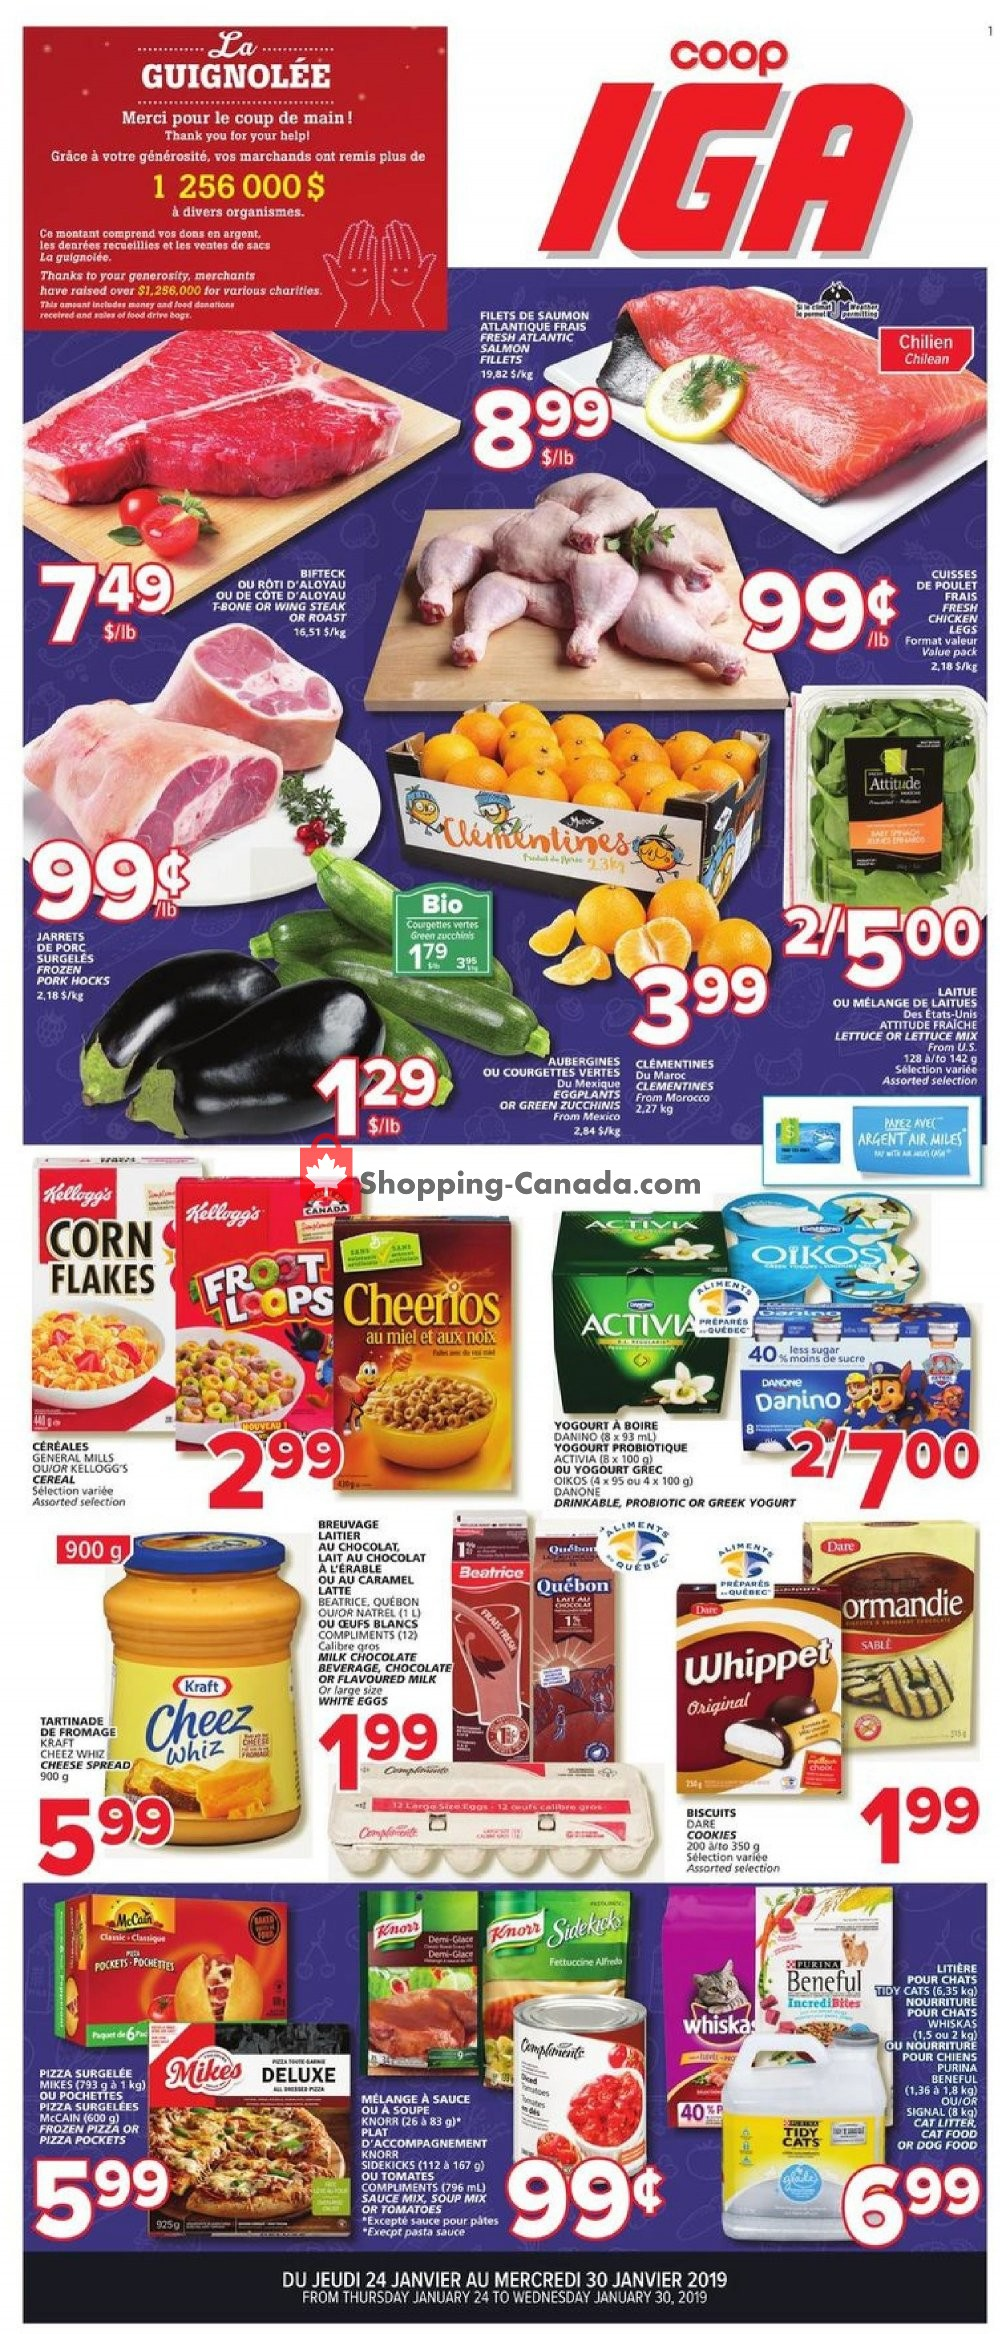 Flyer IGA Extra Canada - from Thursday January 24, 2019 to Wednesday January 30, 2019